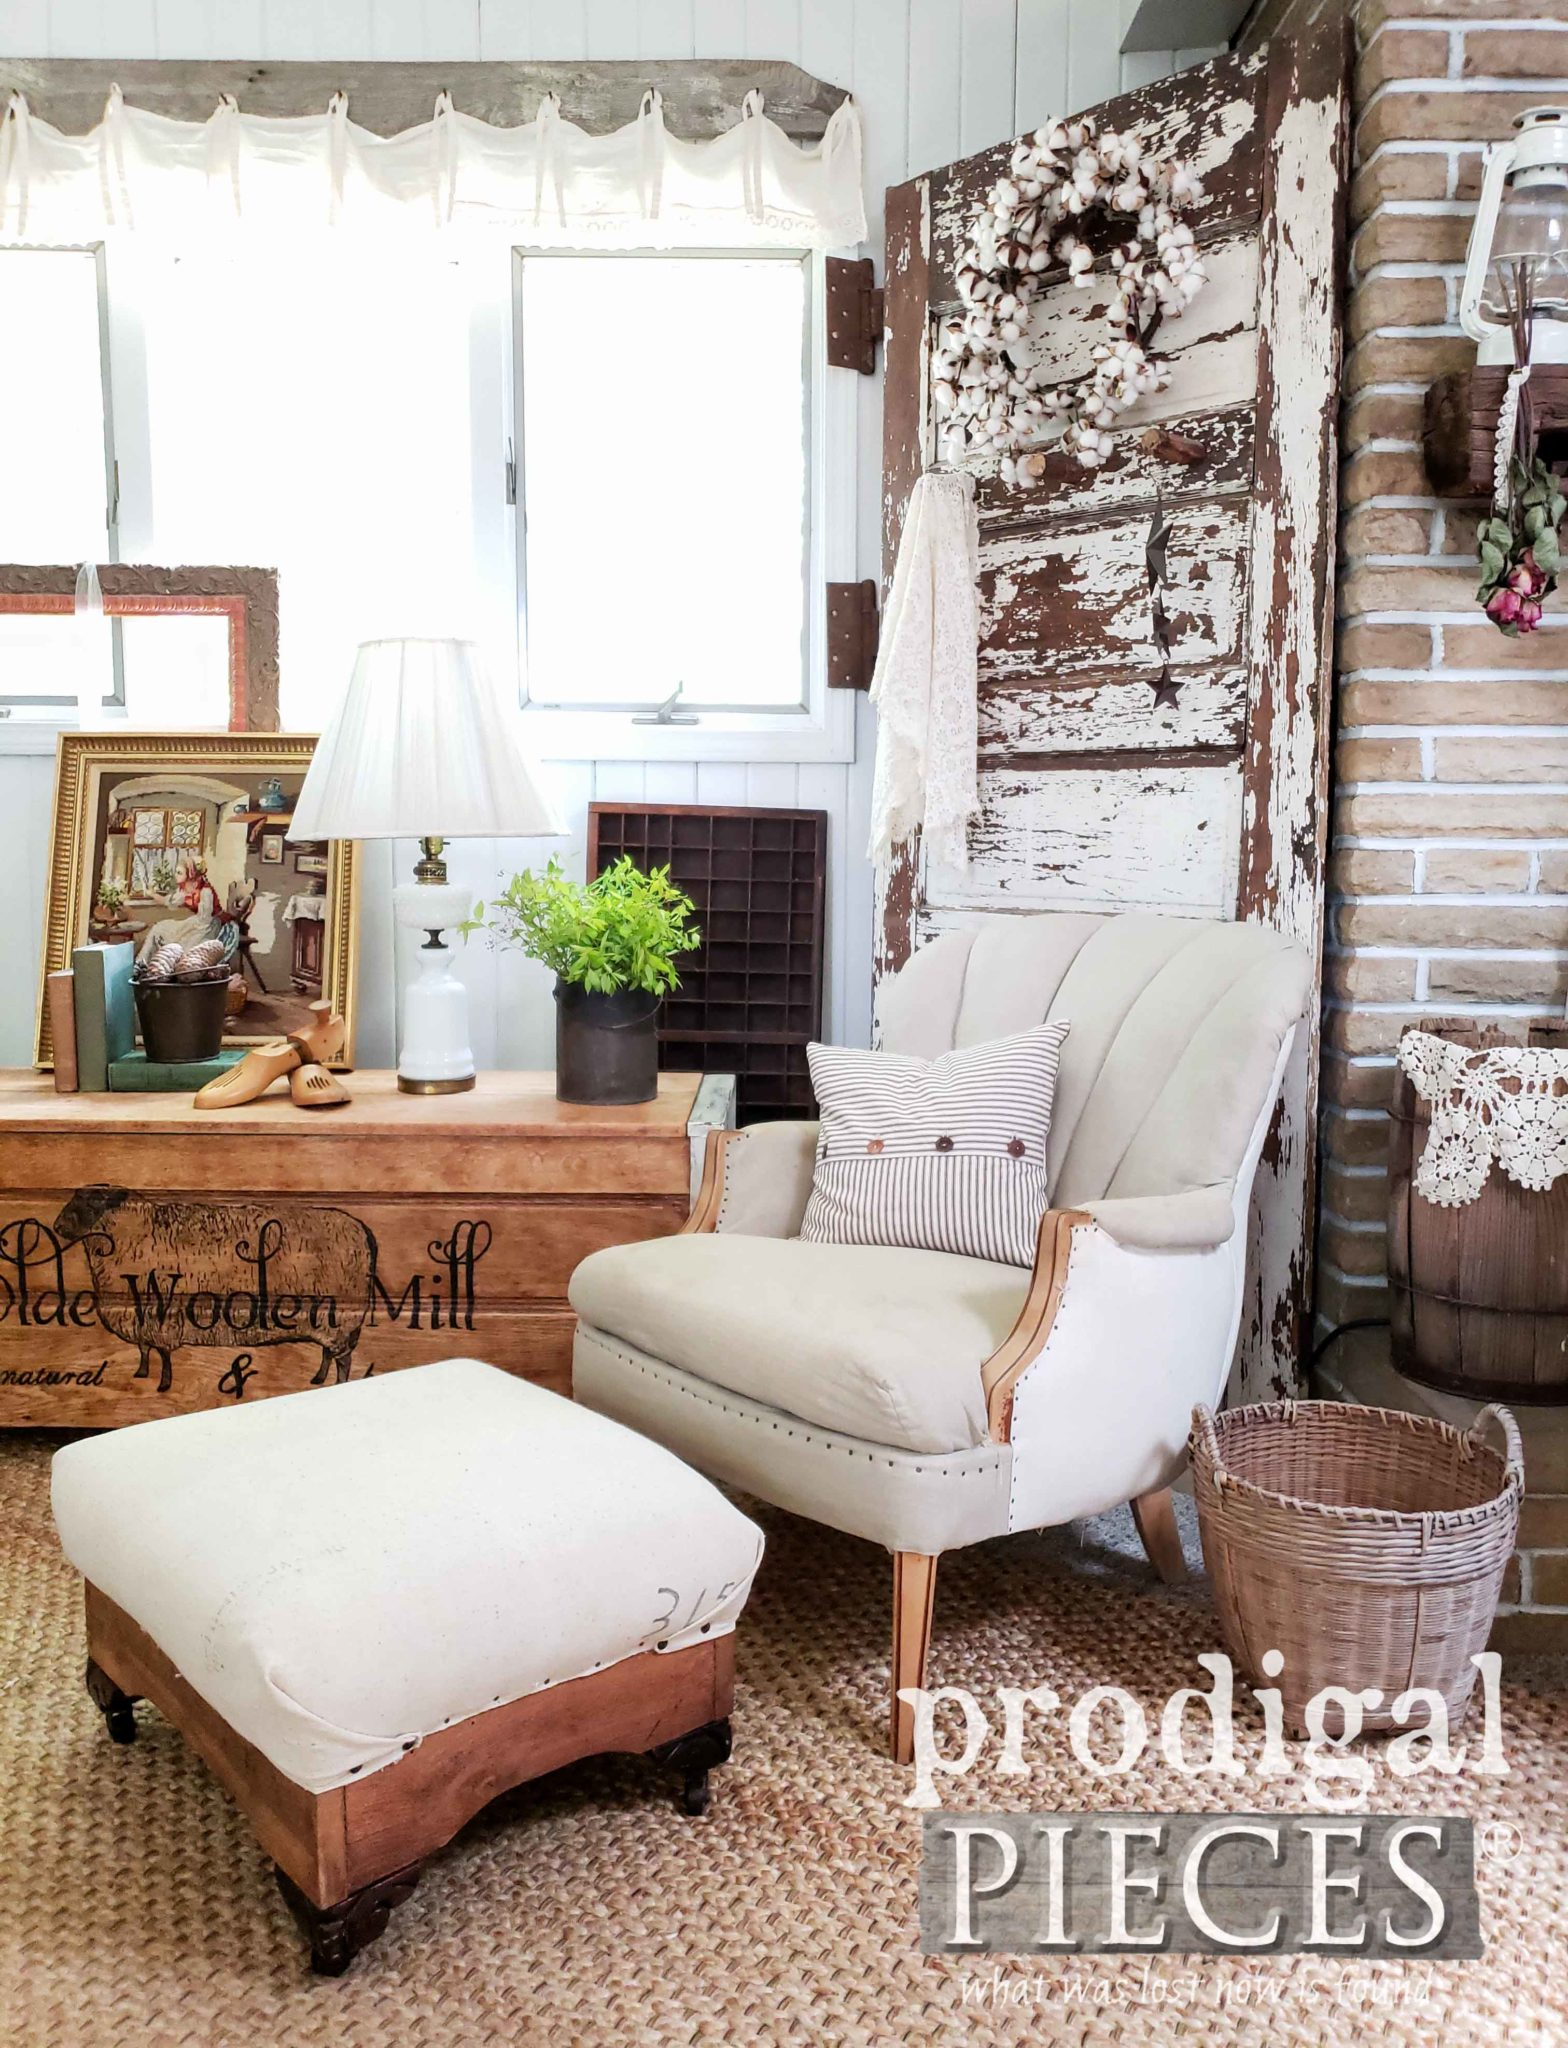 DIY Deconstructed Ottoman and Chair for Rustic Farmhouse Style by Larissa of Prodigal Pieces | prodigalpieces.com